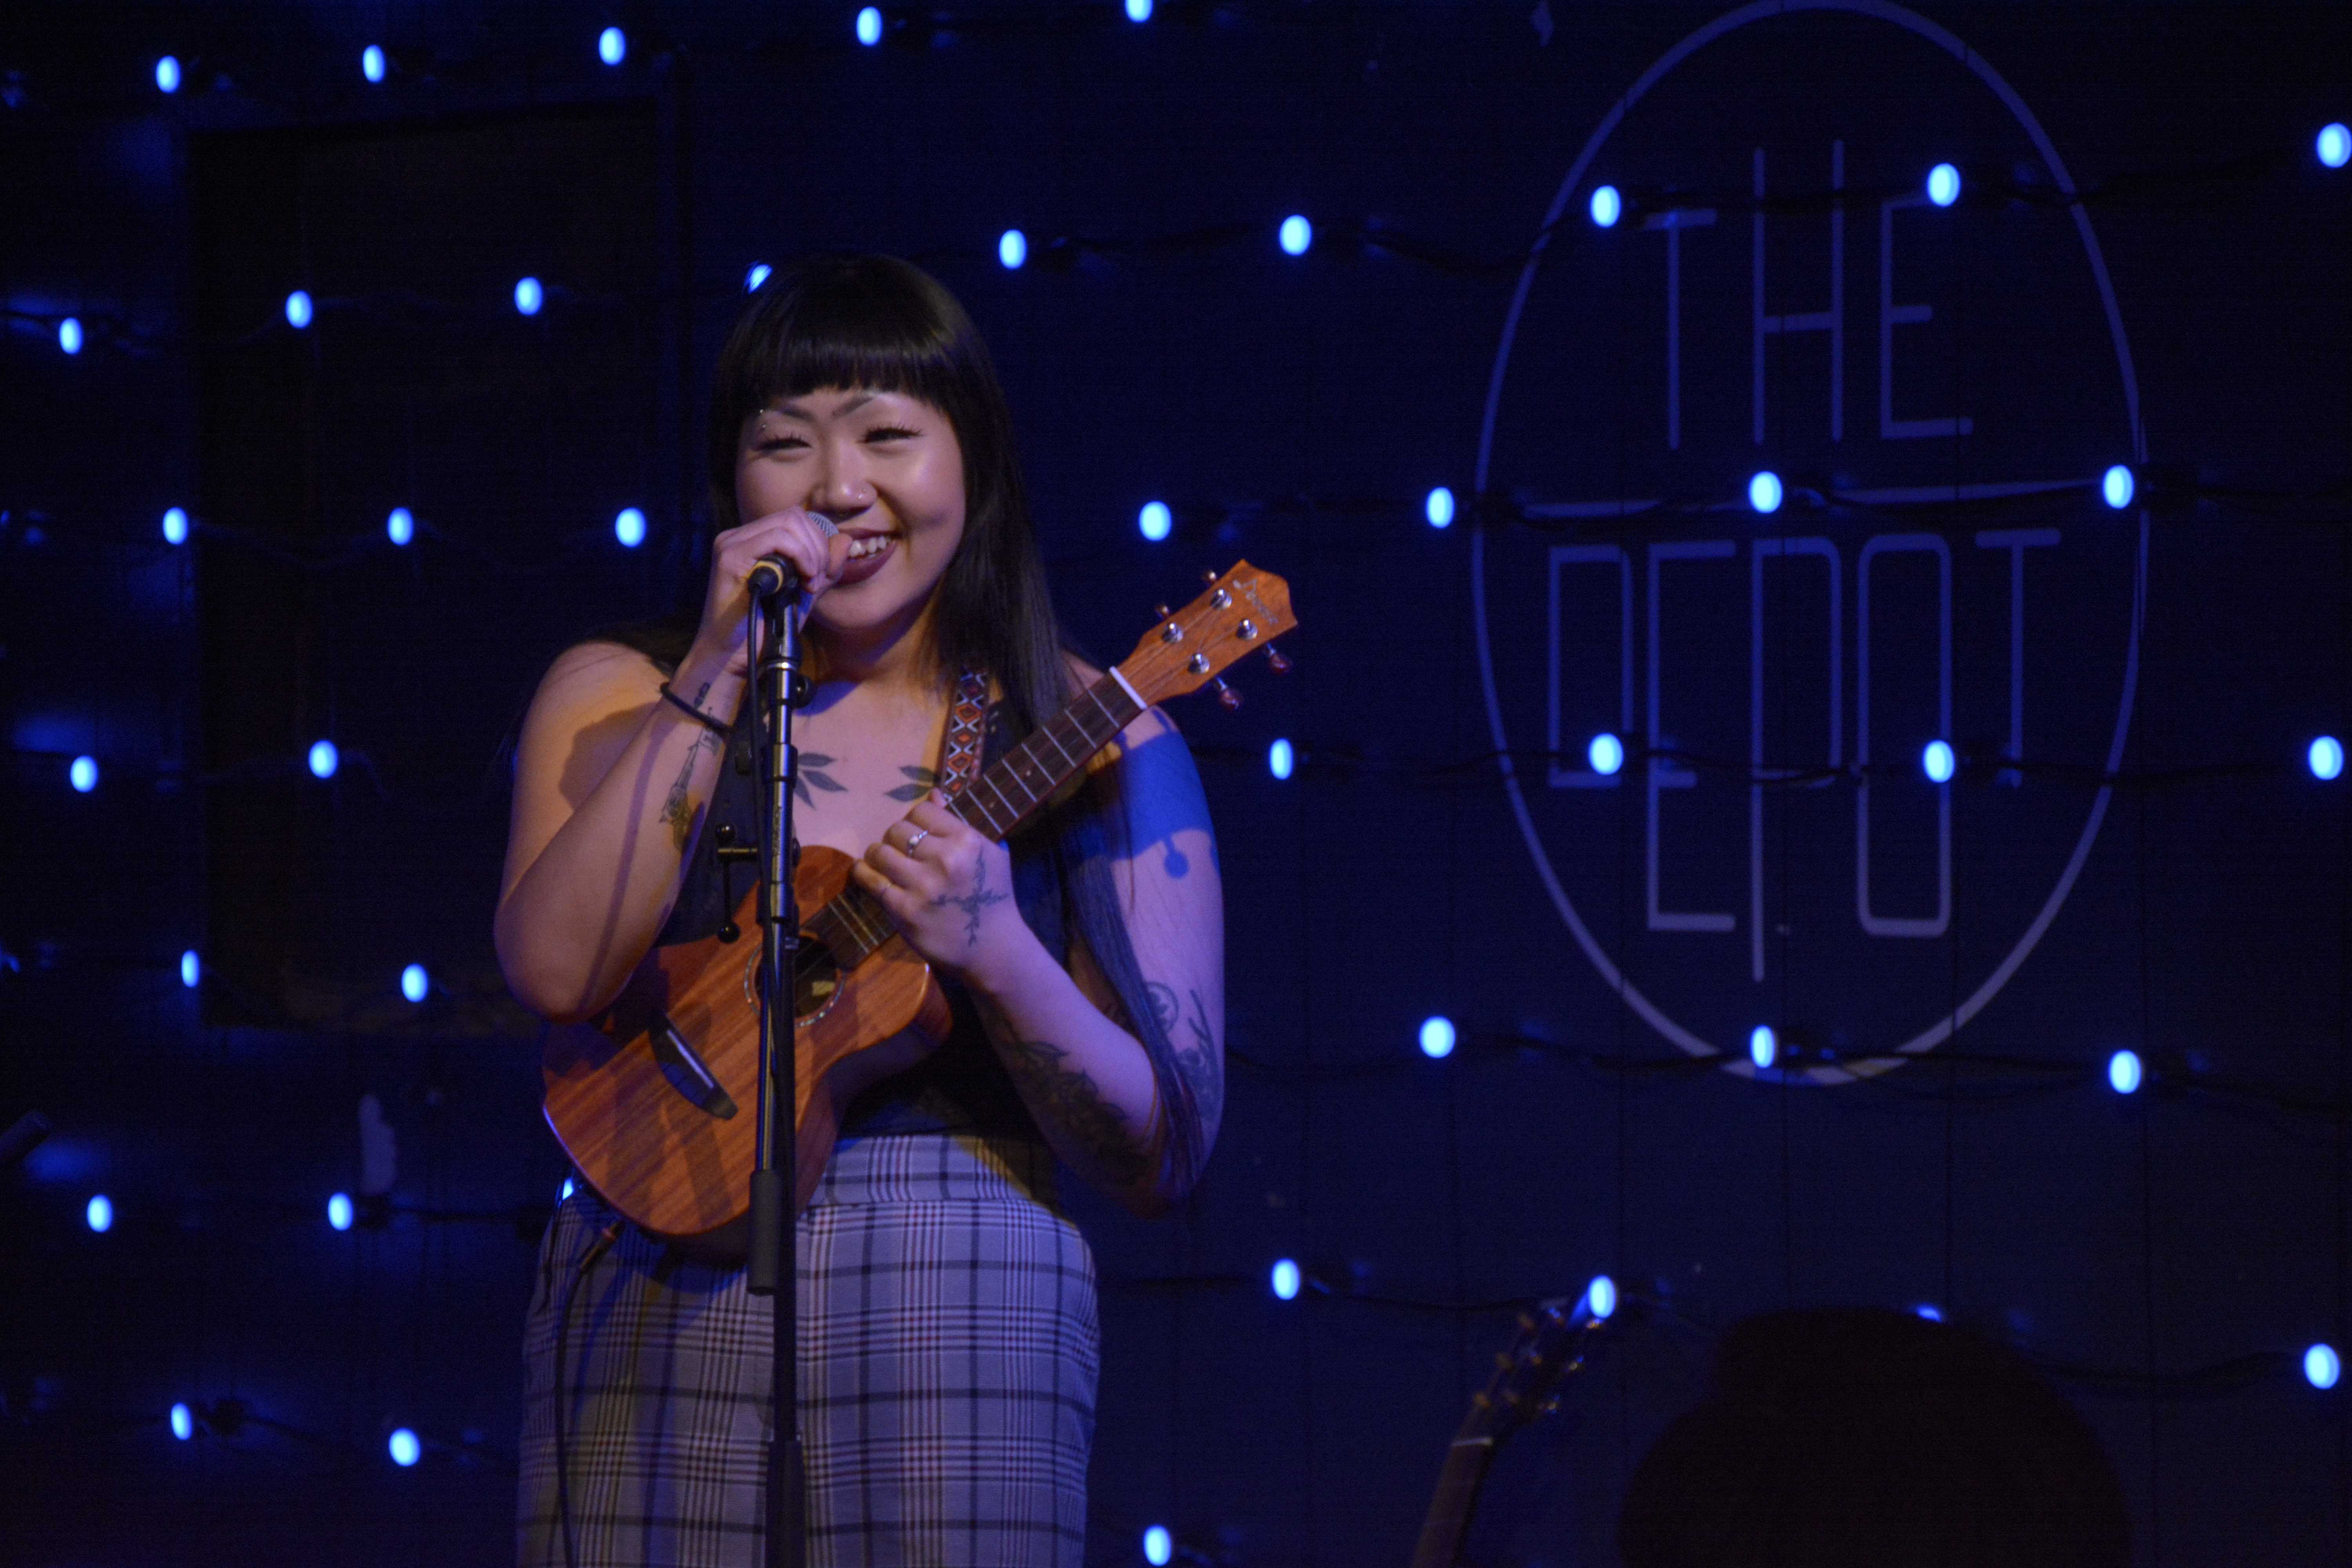 Broken Mic Night fills the Depot with poetry, music and laughs